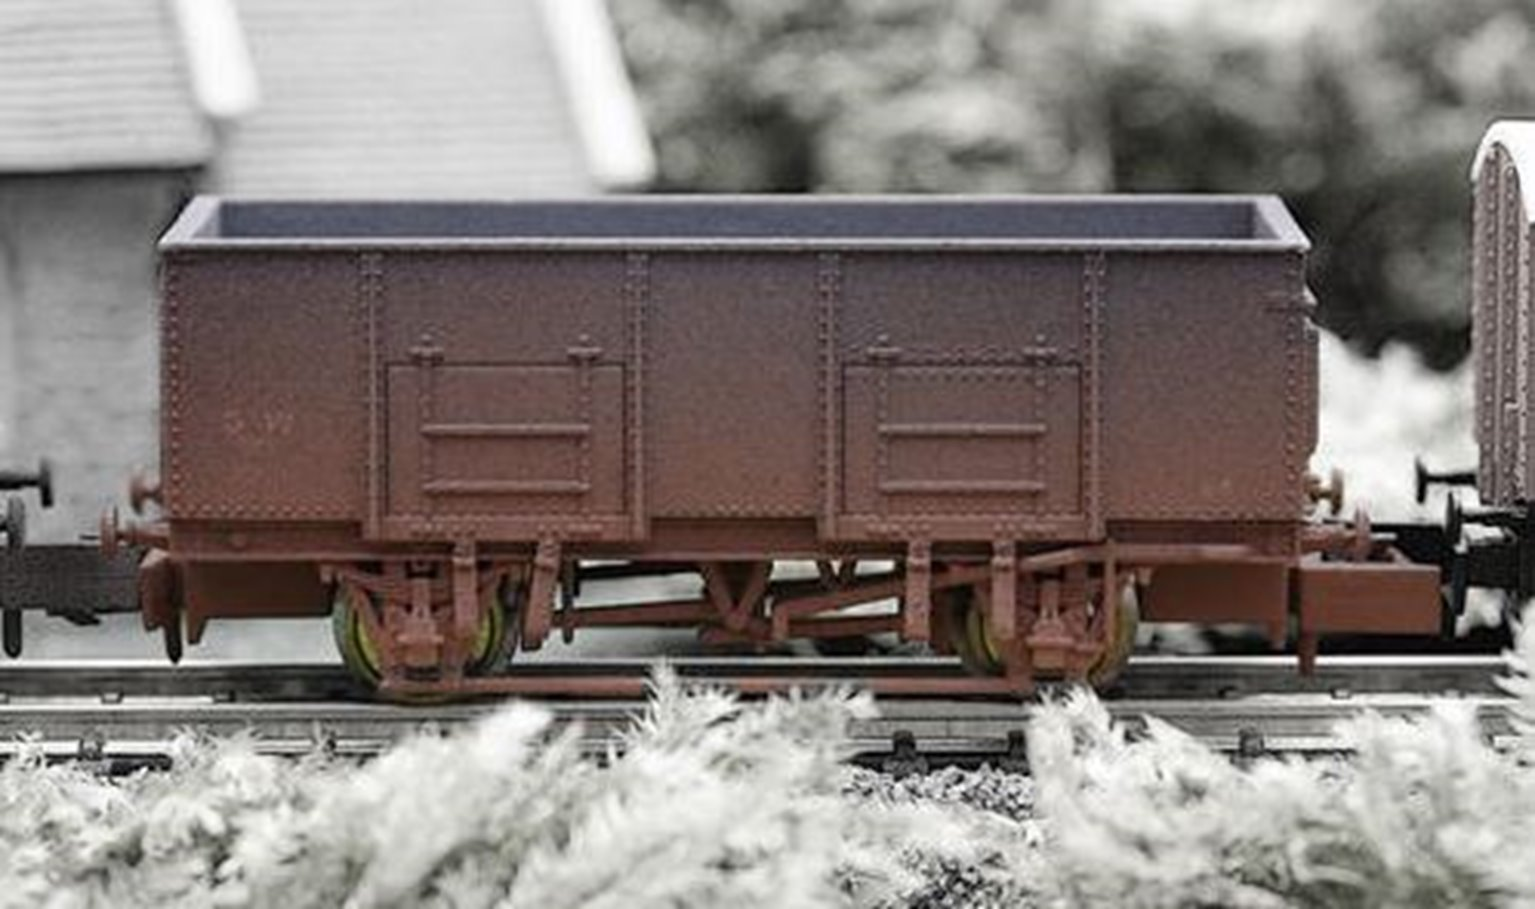 Dapol 2F-038-042 20T Steel Mineral GWR 33250 Weathered